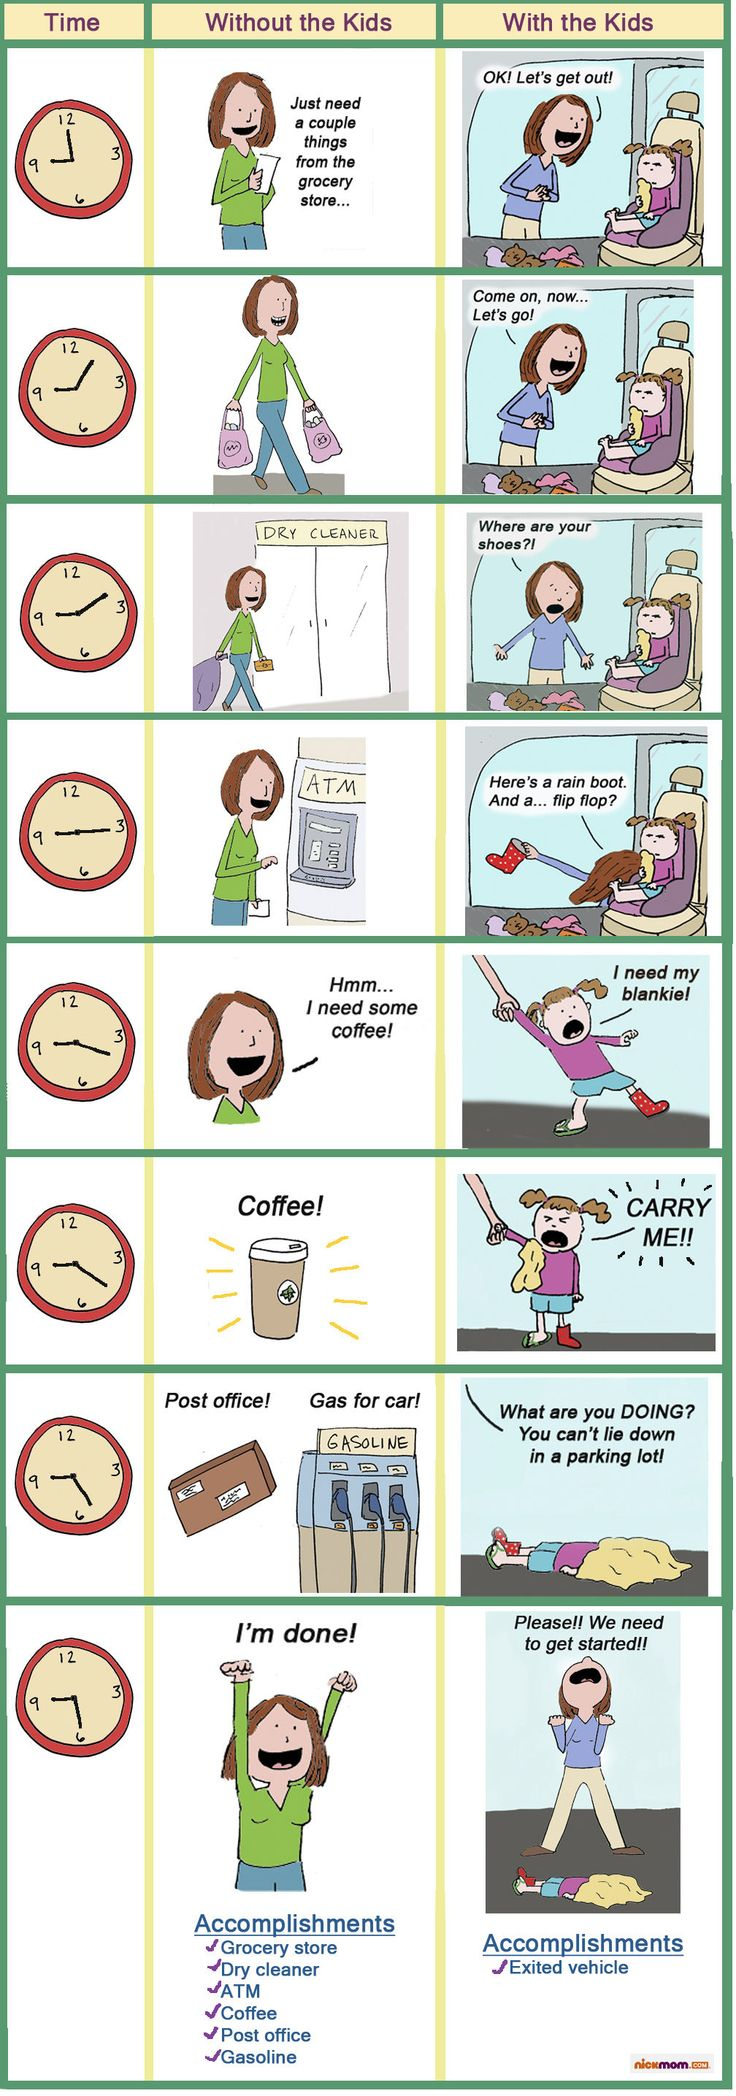 What You Can Get Done in 30 Minutes Without Your Kids vs. With Your Kids   More LOLs & Funny Stuff for Moms   NickMom